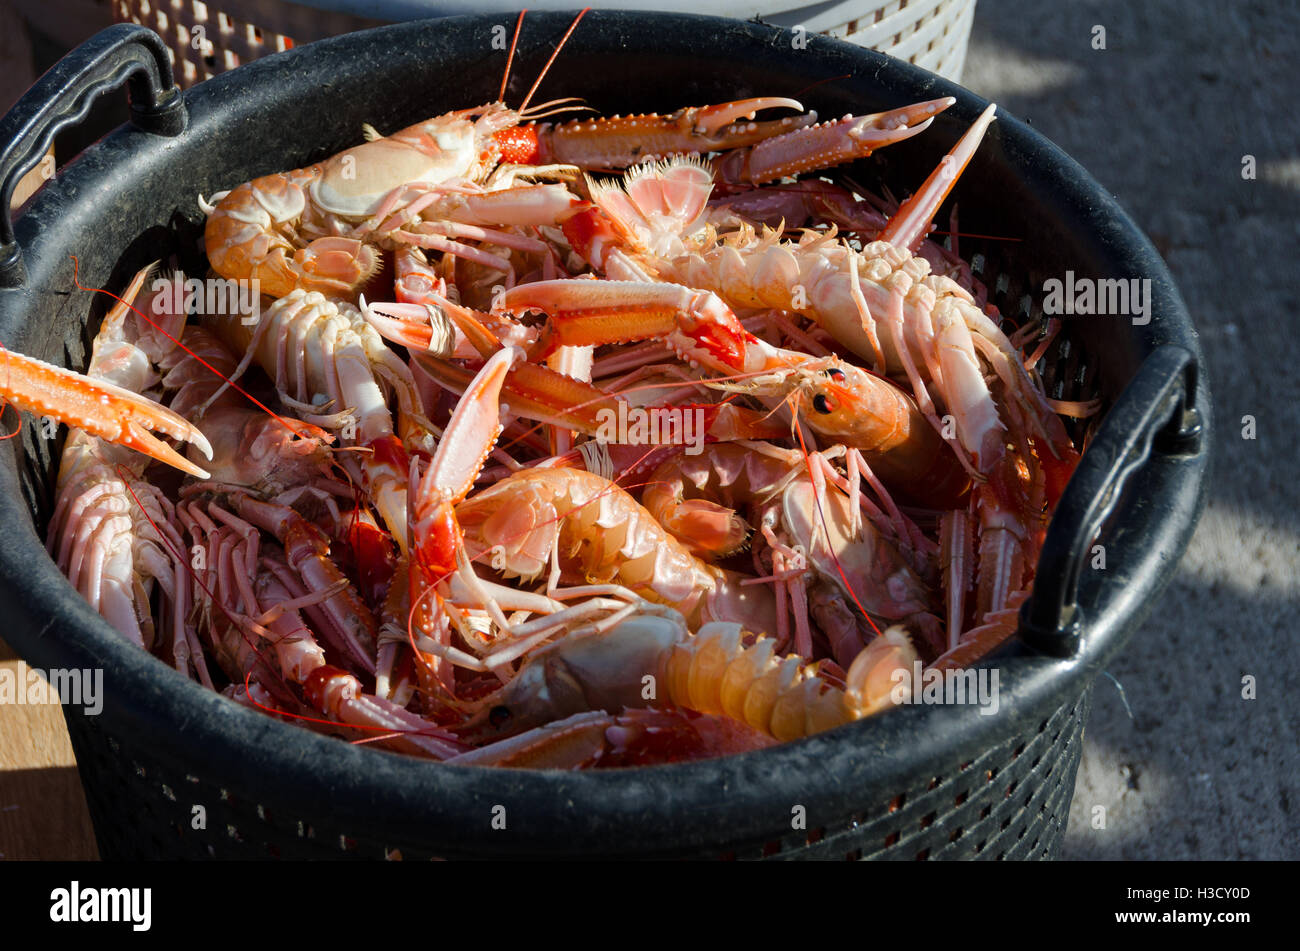 one basket full of norway lobster ready to eat - Stock Image